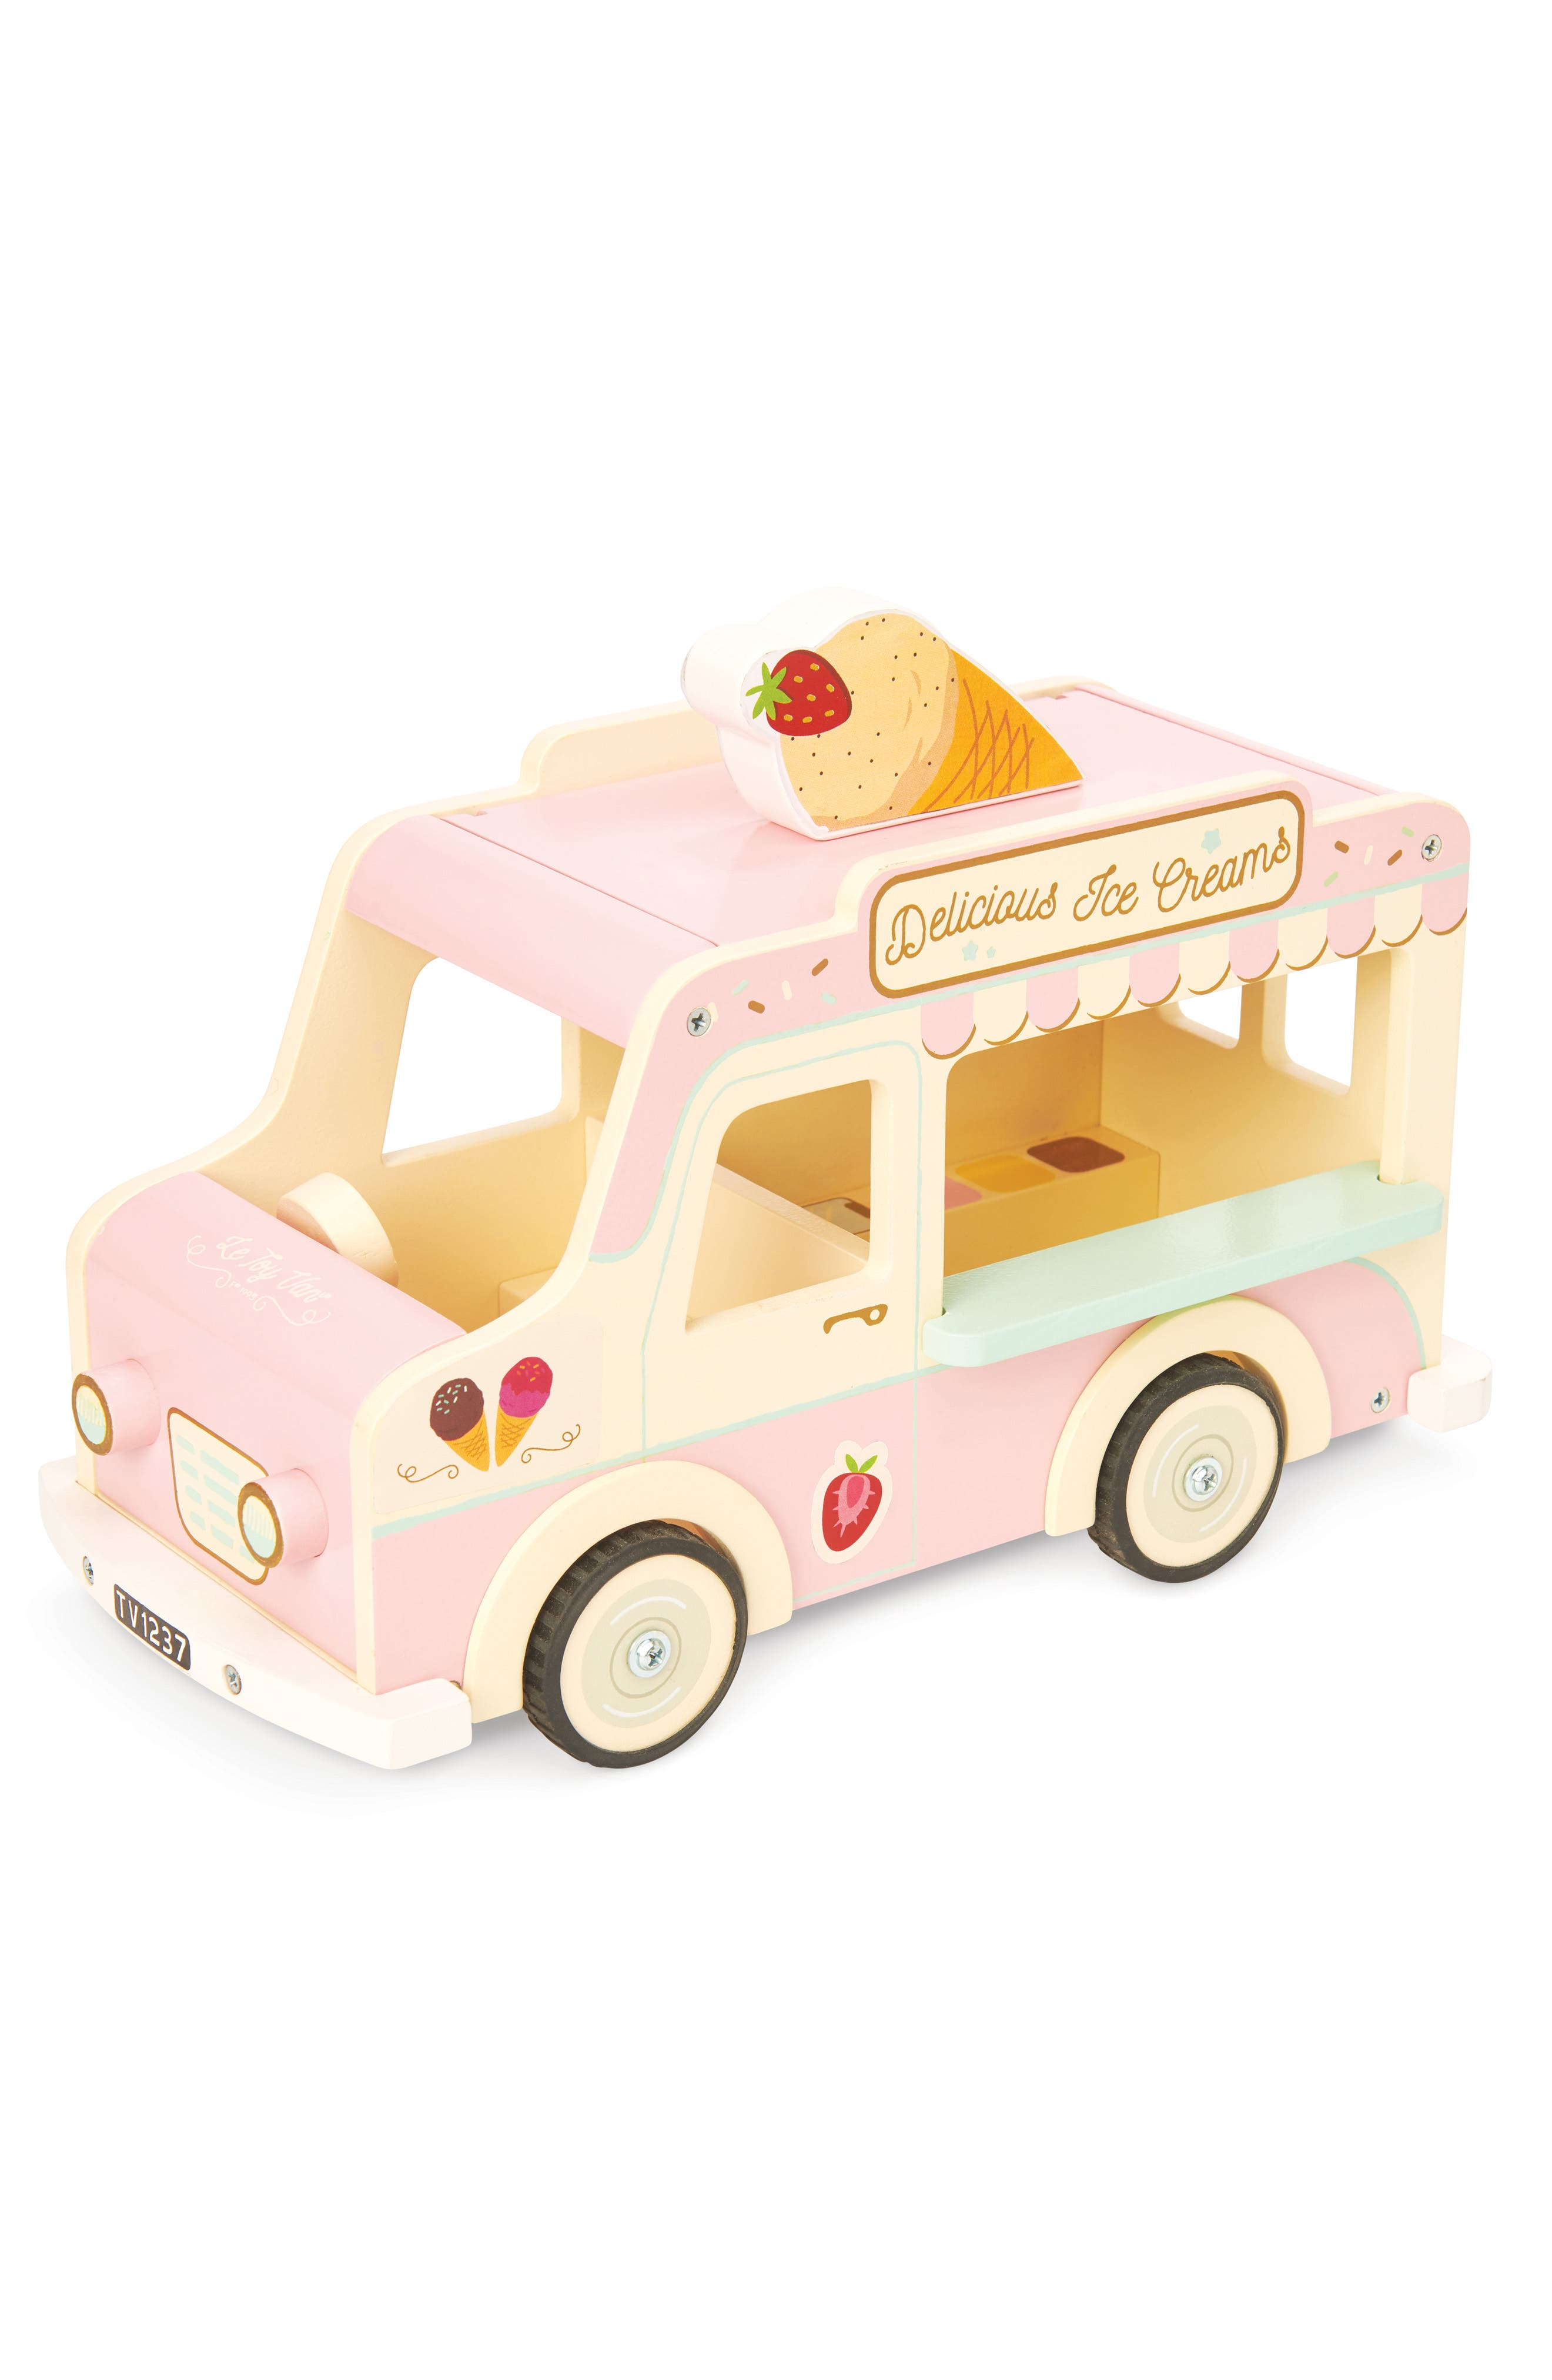 Kids will love the darling design of this old-school toy ice cream truck complete with a sheet full of stickers for fun personalization. Style Name: Le Toy Van Dolly Ice Cream Toy Van. Style Number: 6124932. Available in stores.